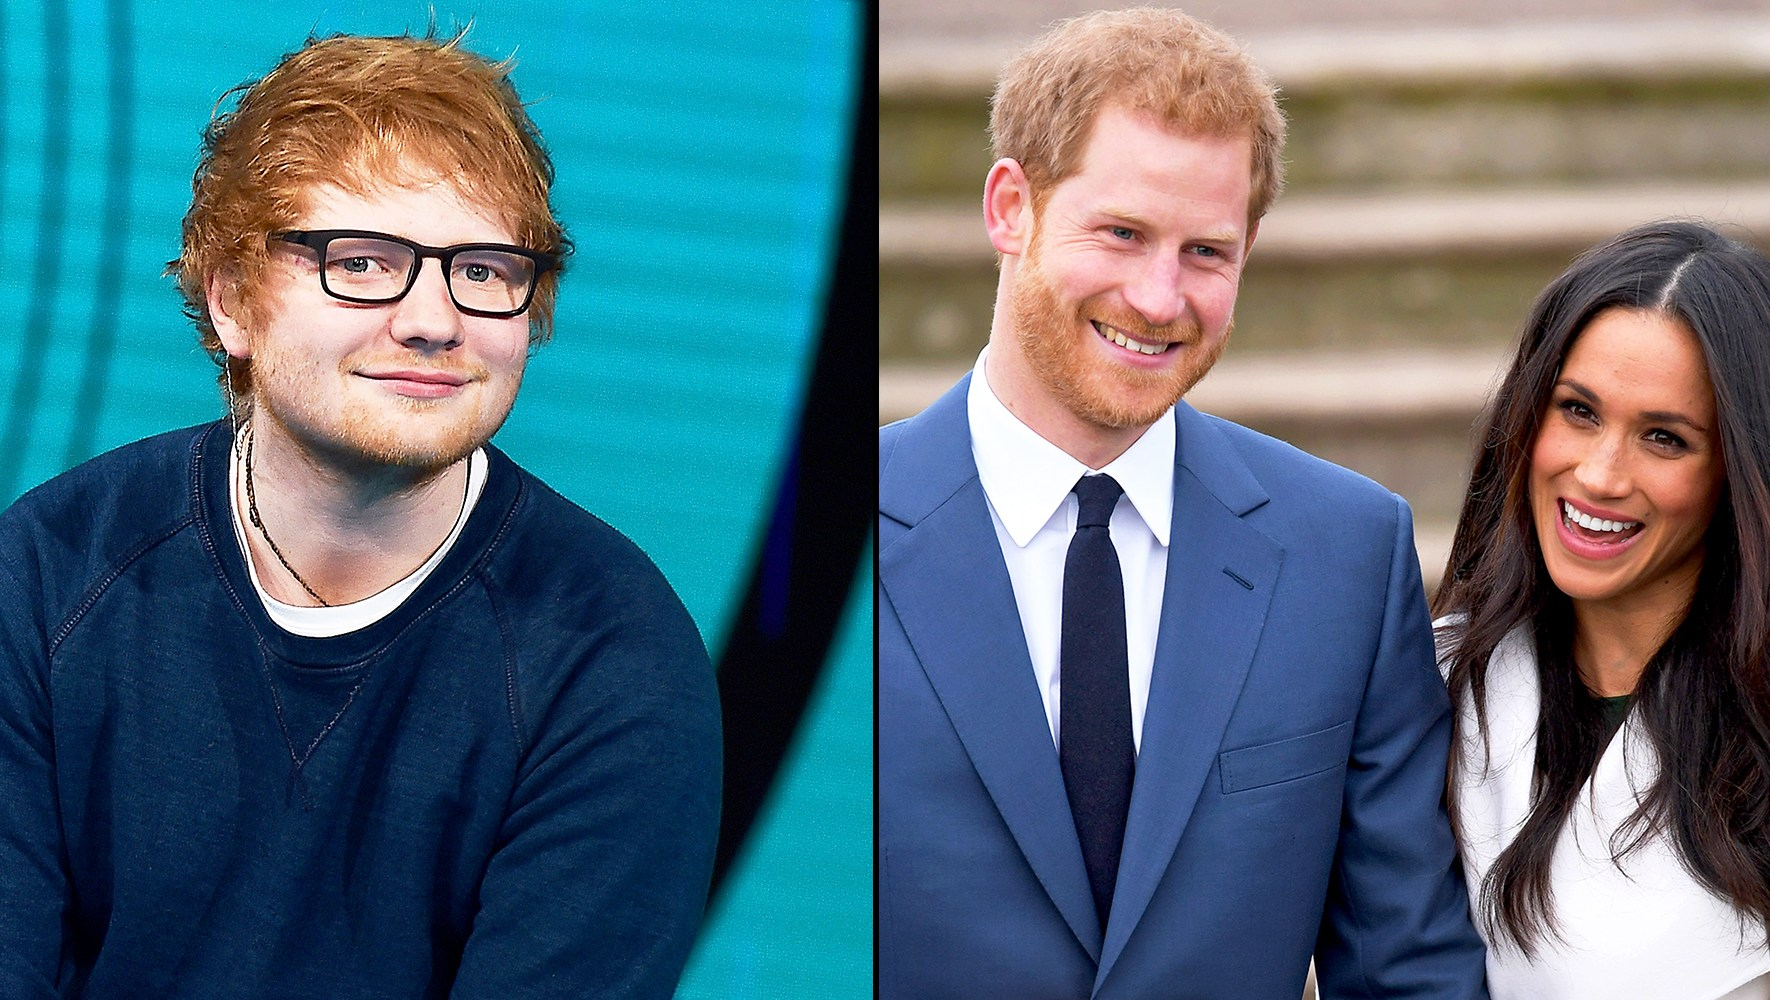 Ed Sheeran, Prince Harry and Meghan Markle